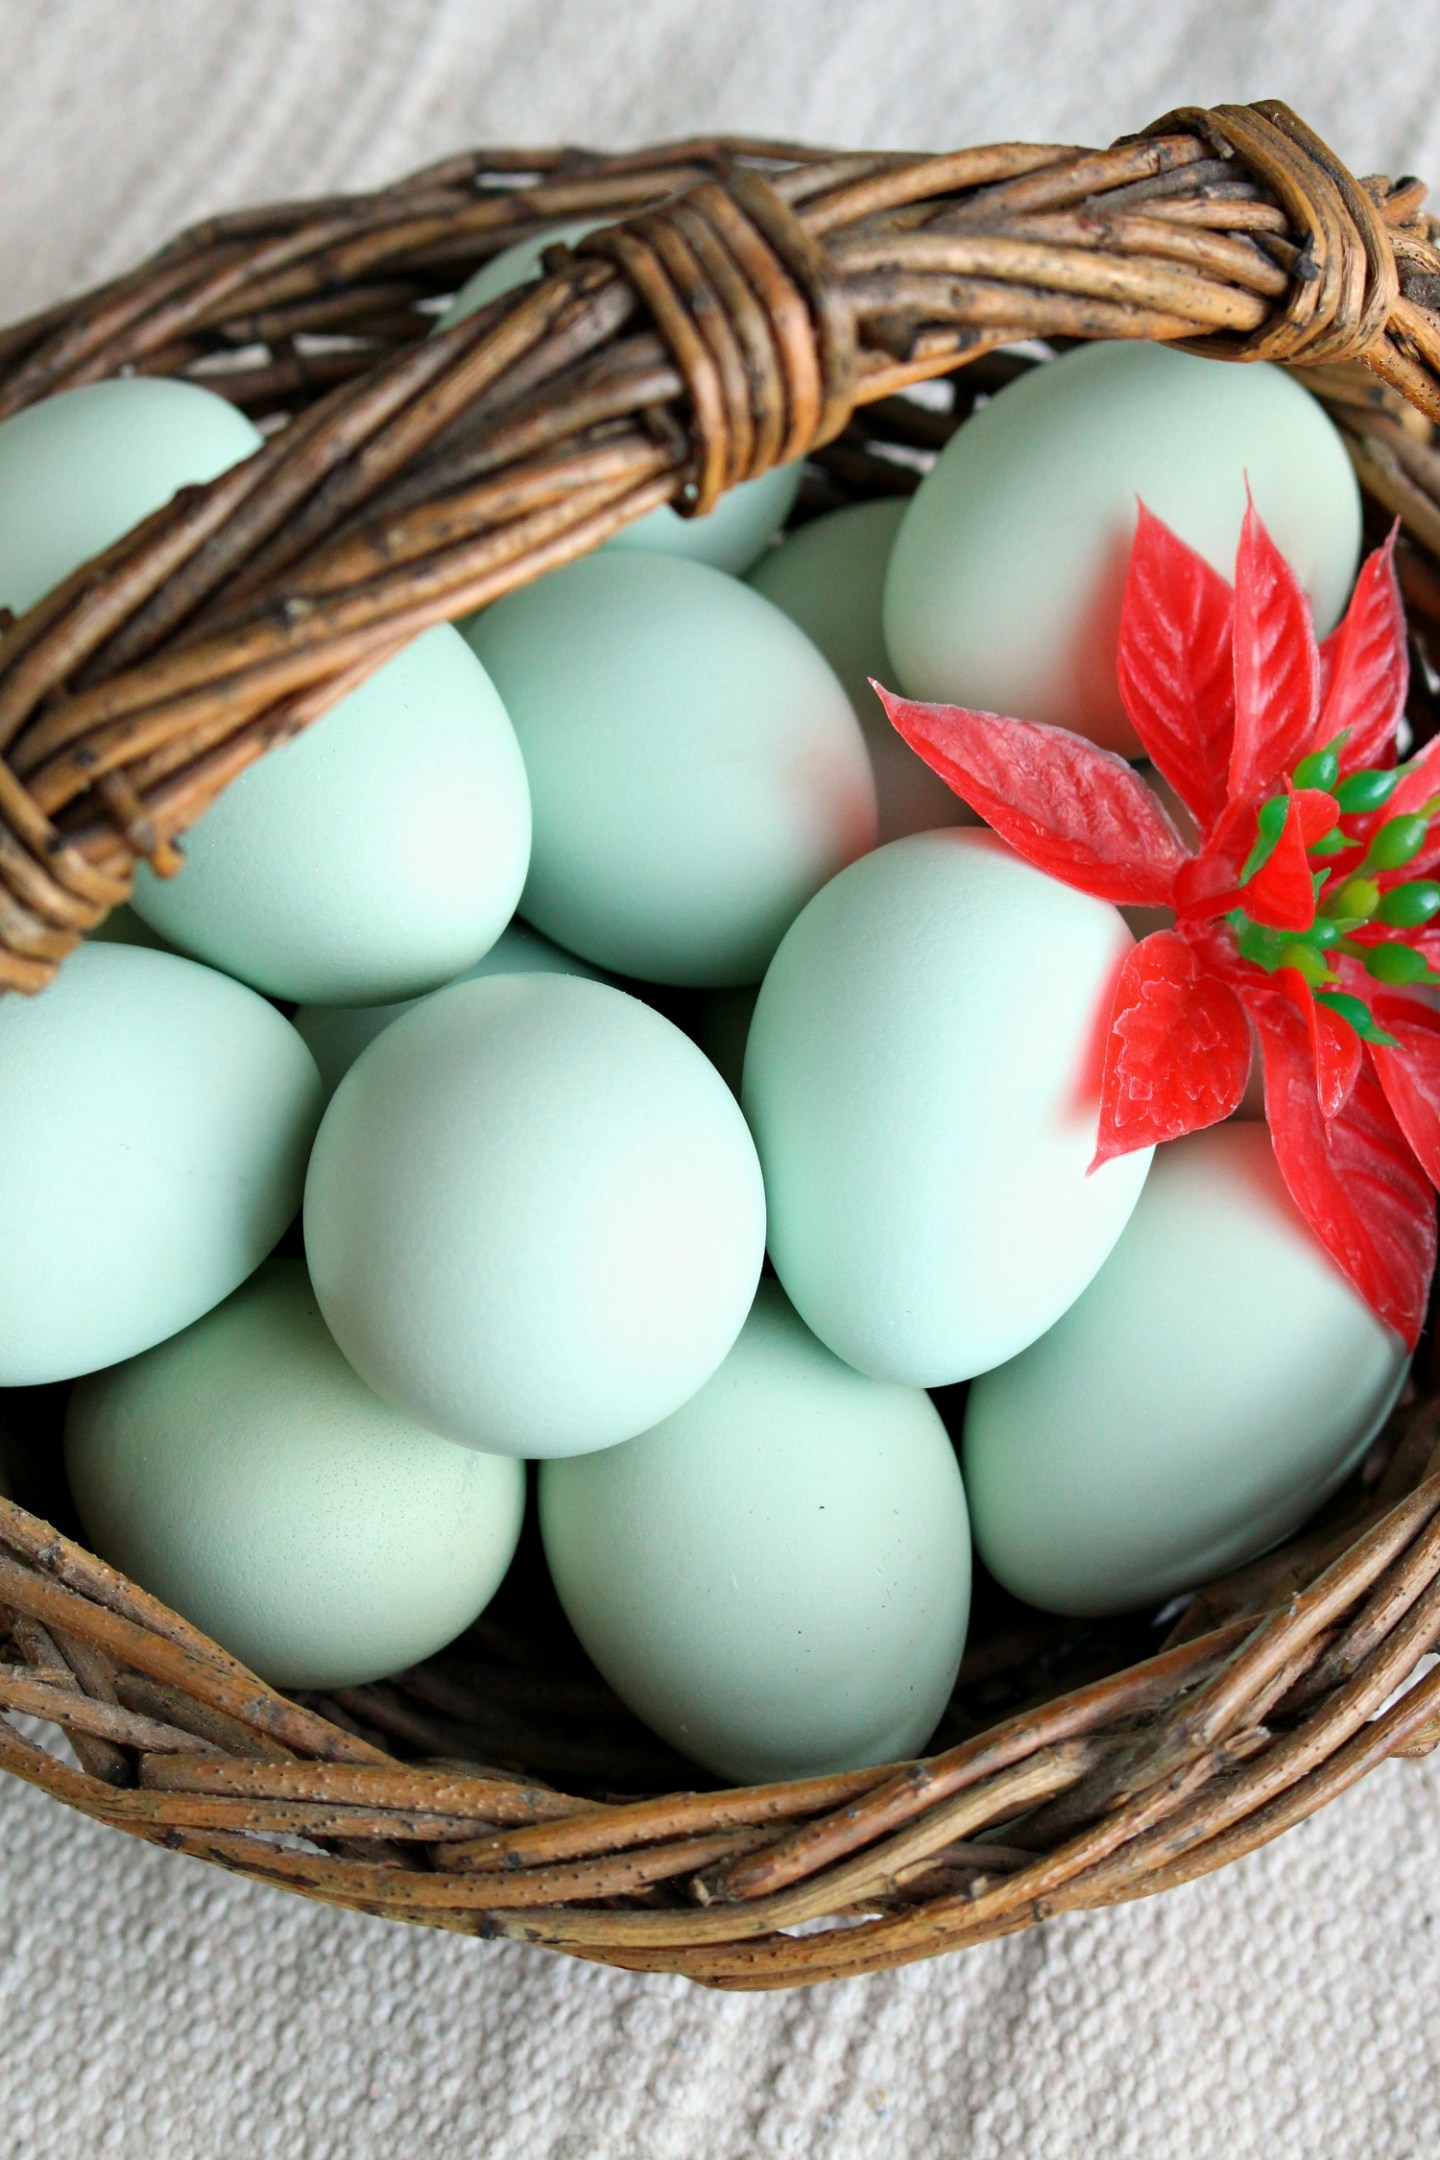 Basket of Turquoise Eggs at Christmas